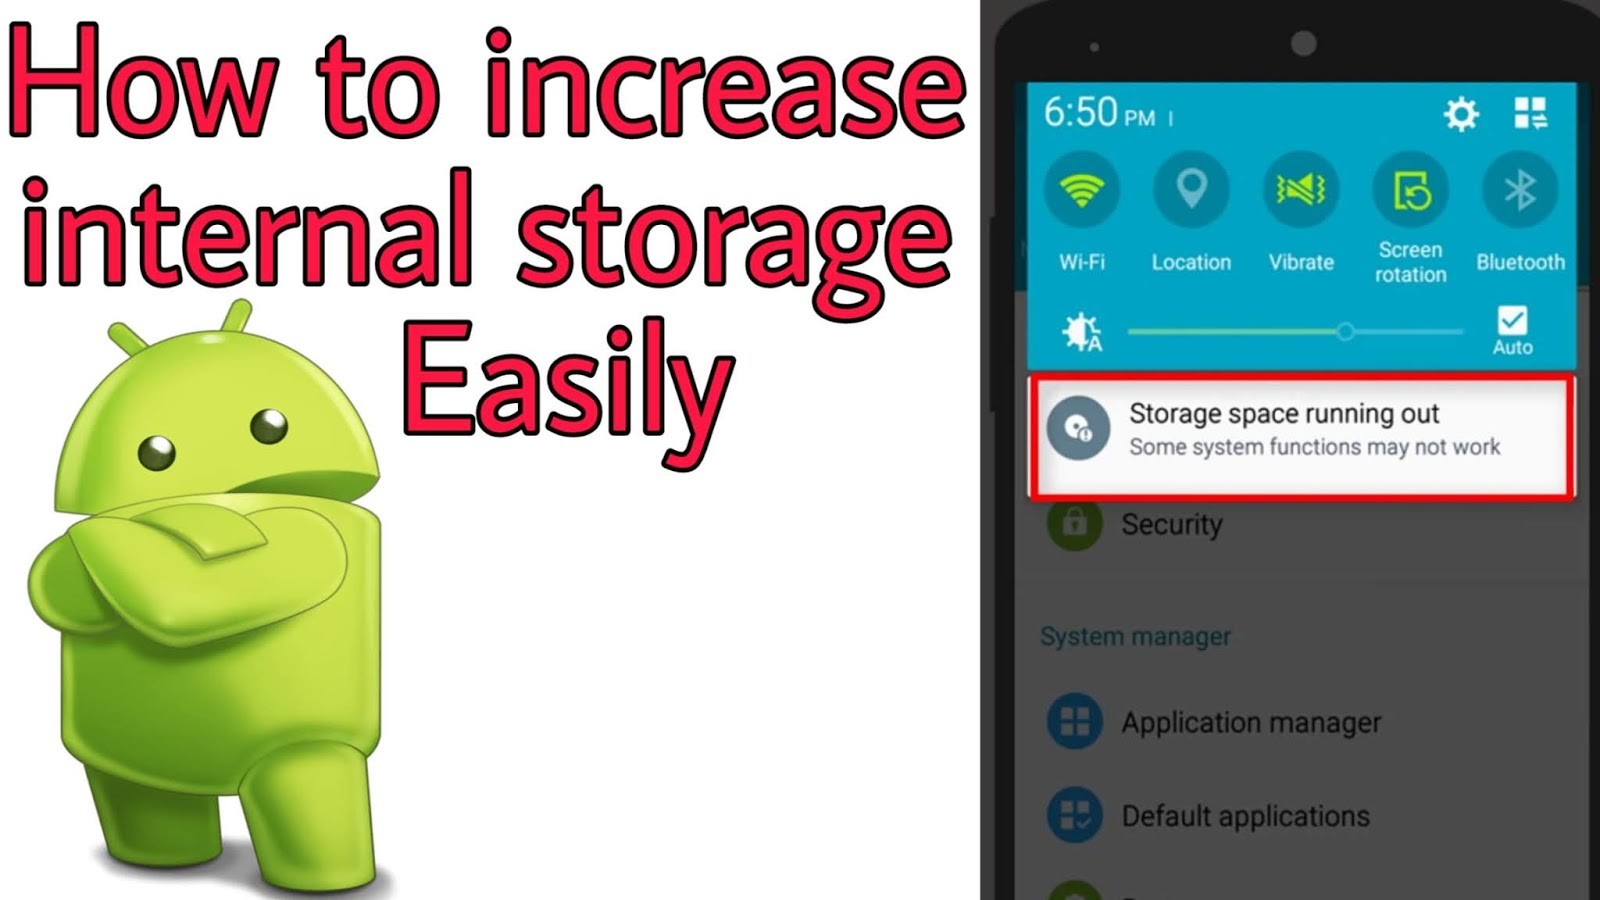 How to increase internal storage on android-2019